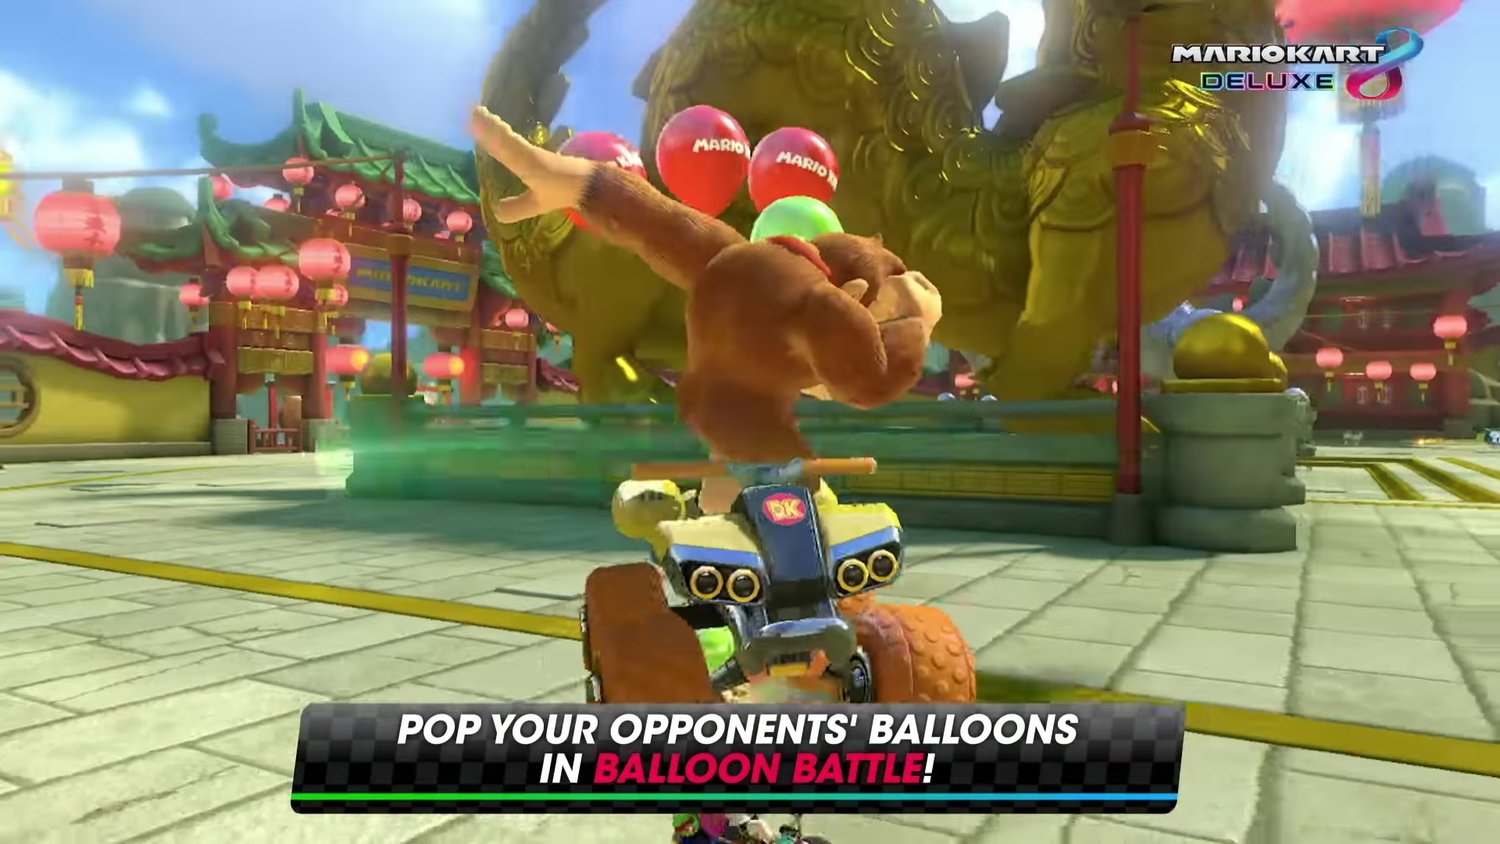 You Can Dab With Donkey Kong in MARIO KART 8 DELUXE